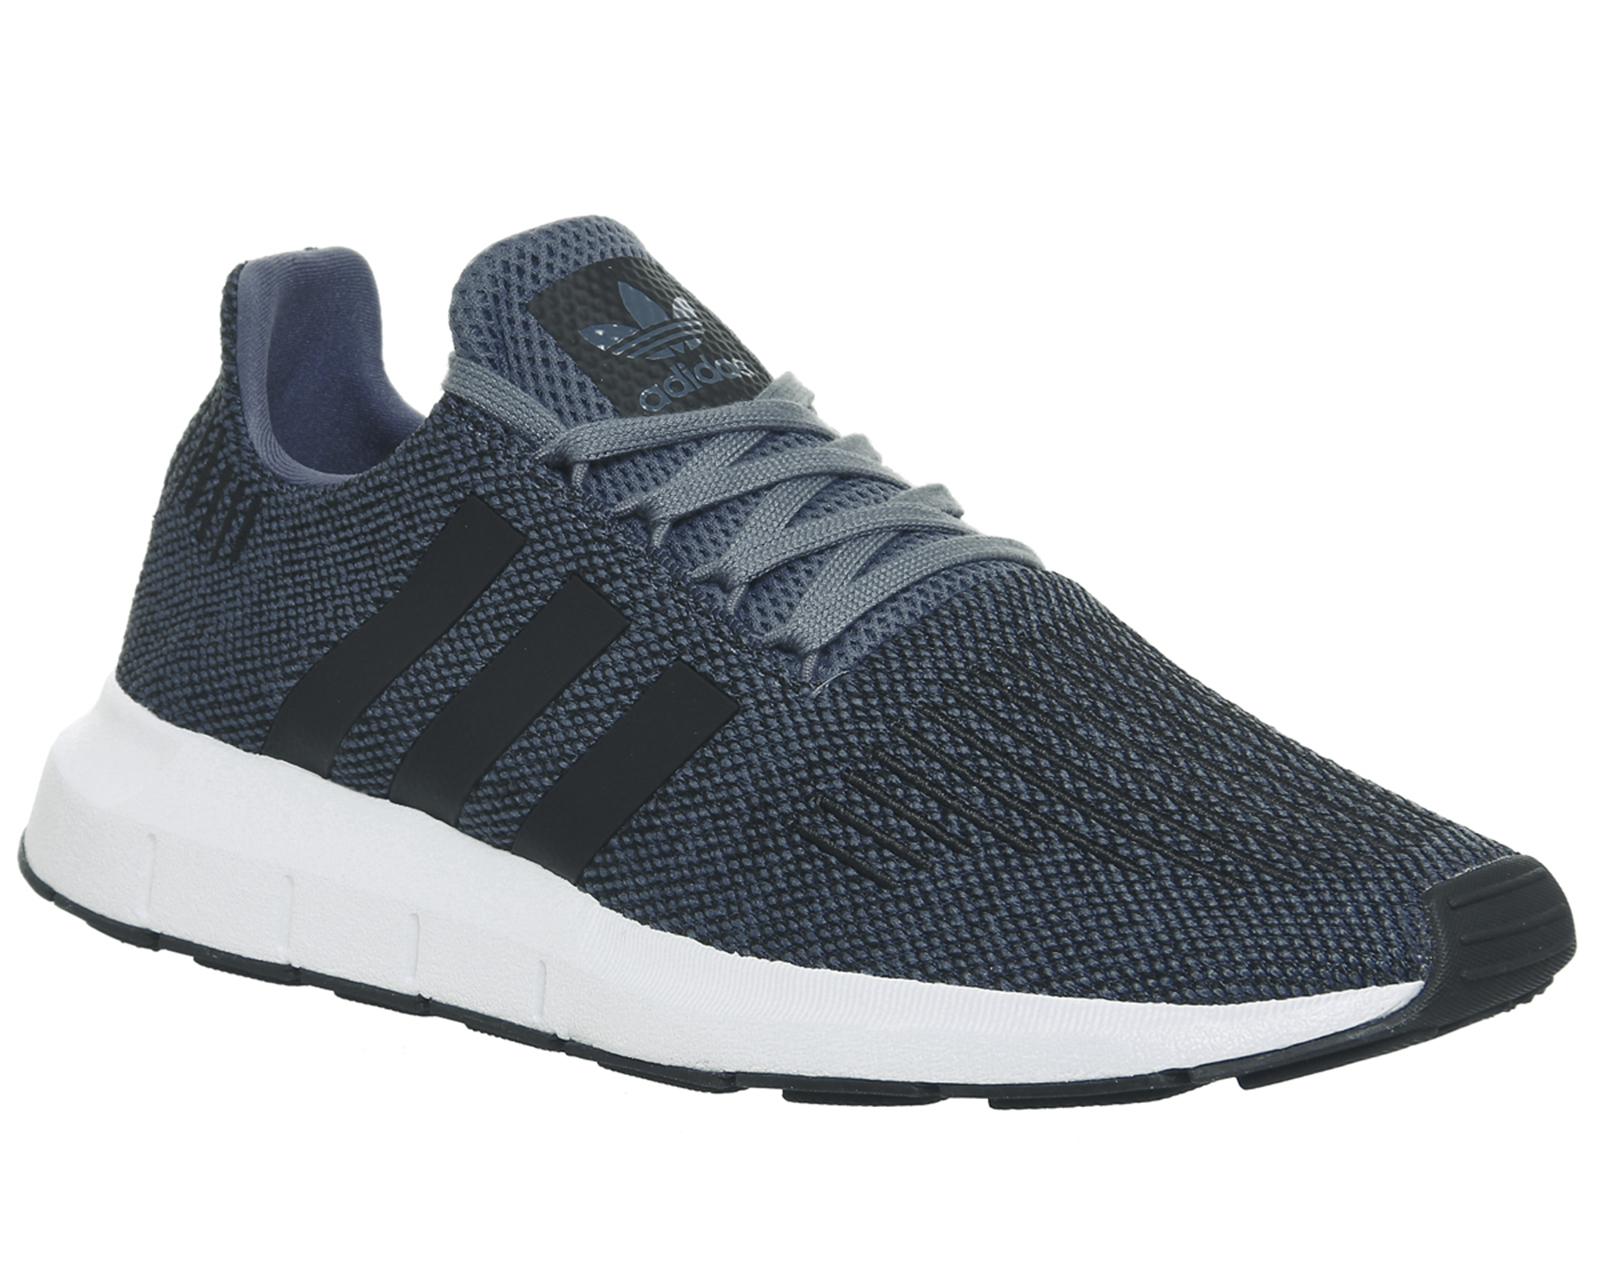 9445559f2a308 Sentinel Adidas Swift Run Trainers RAW STEEL Trainers Shoes